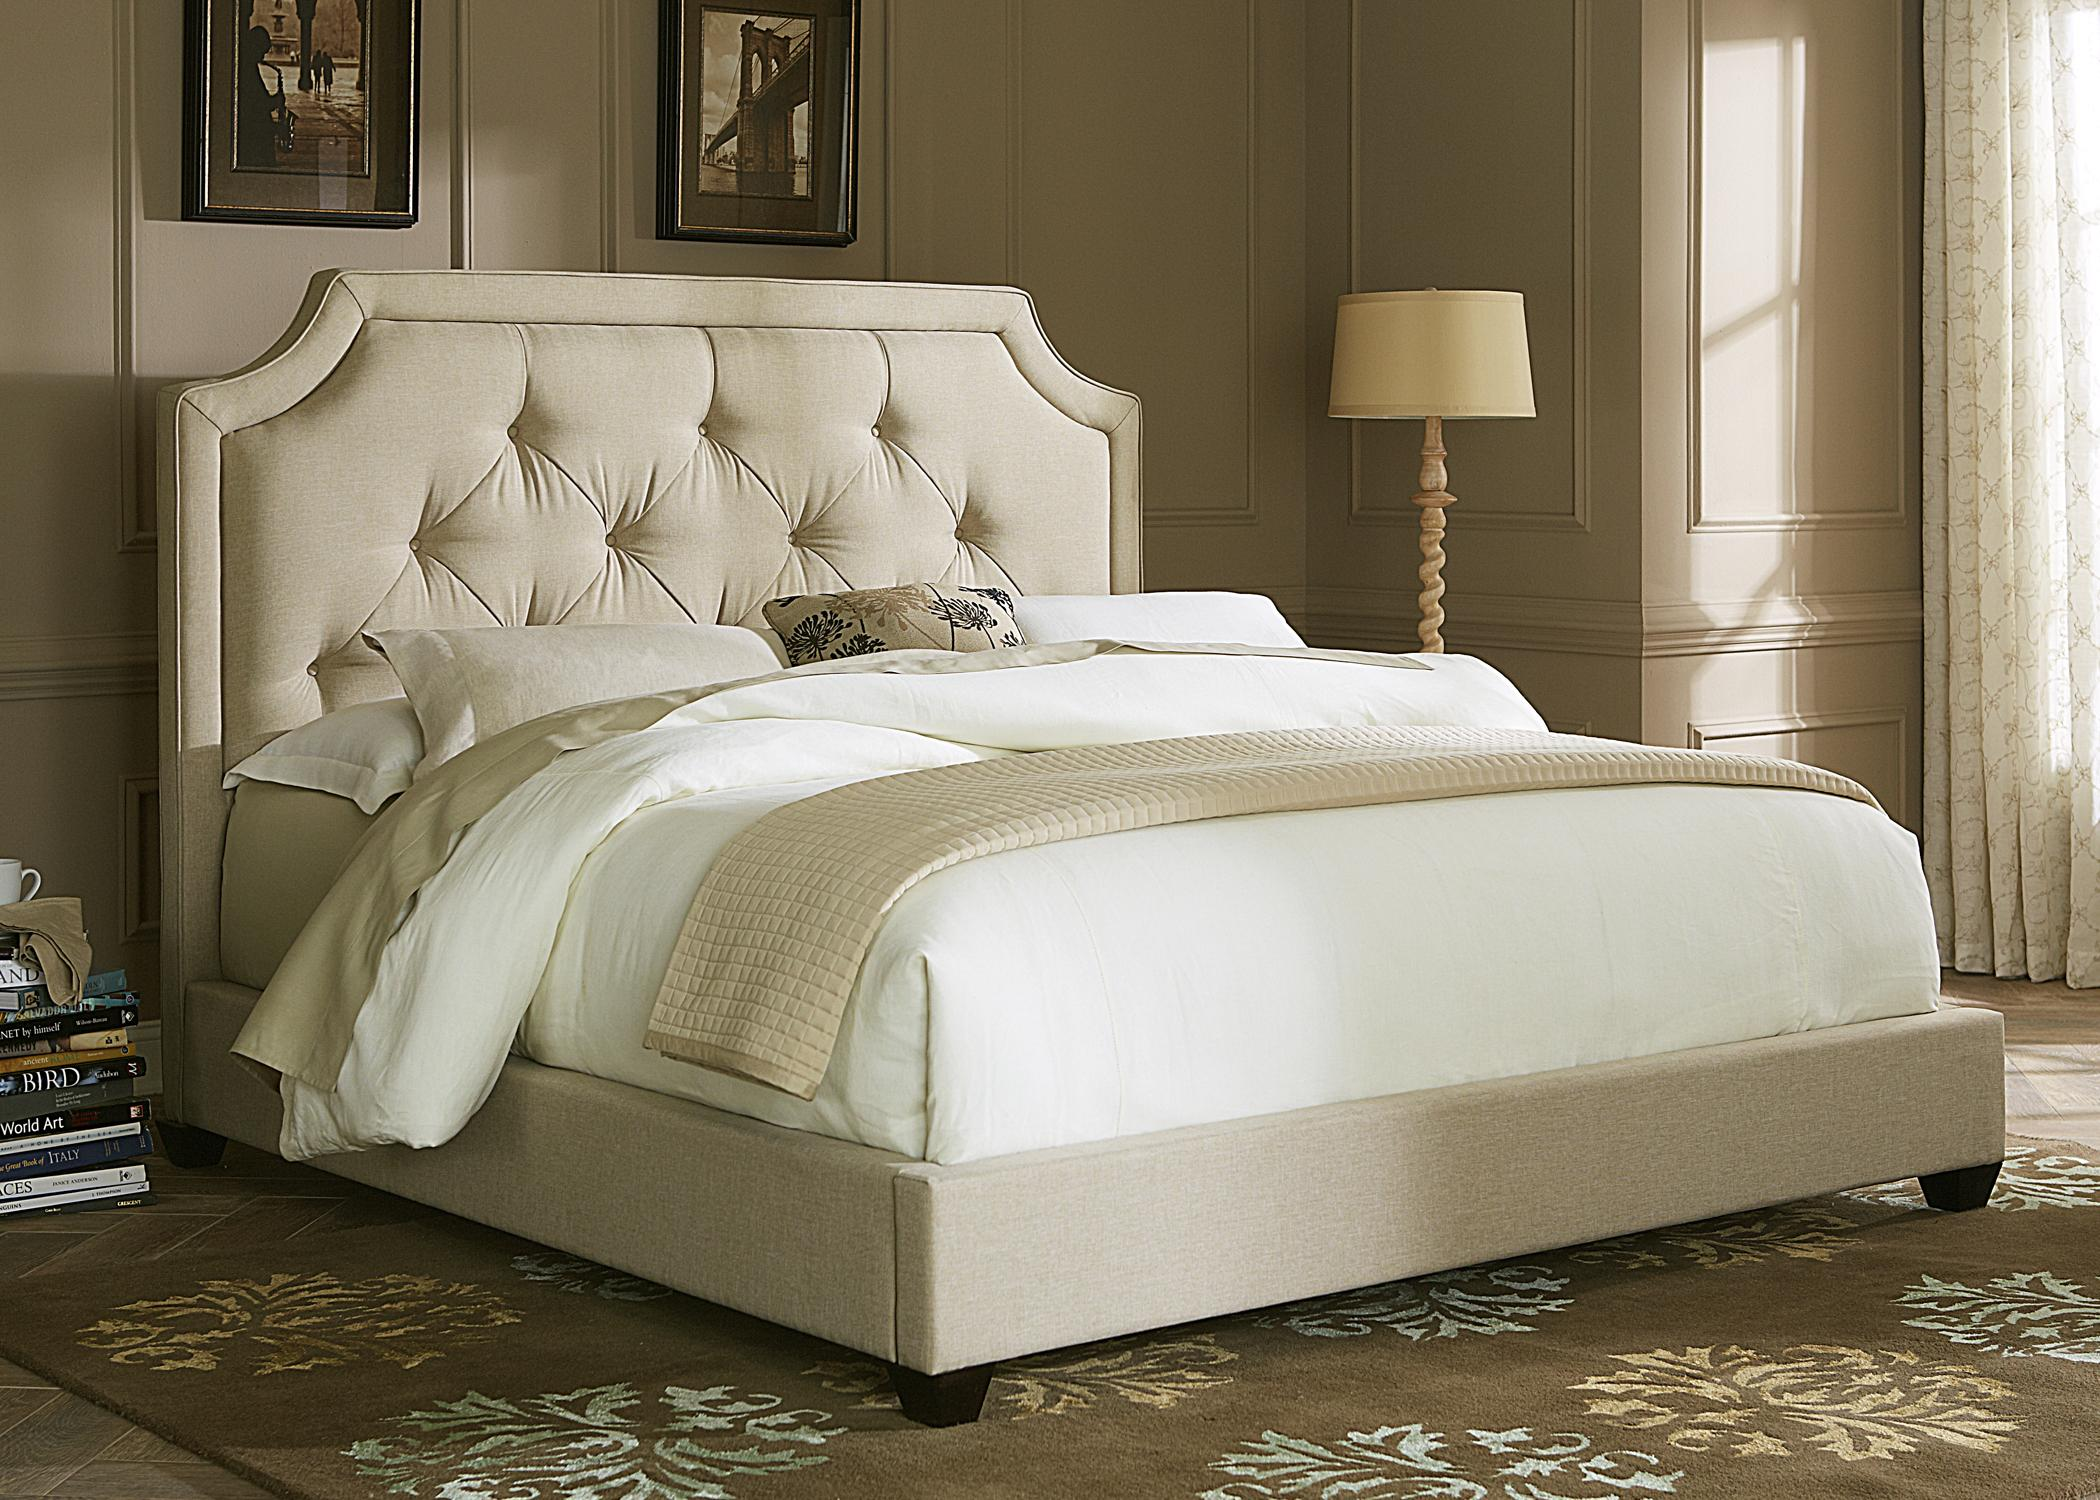 bed in queen products huntleigh riverside carved furniture upholstered item number